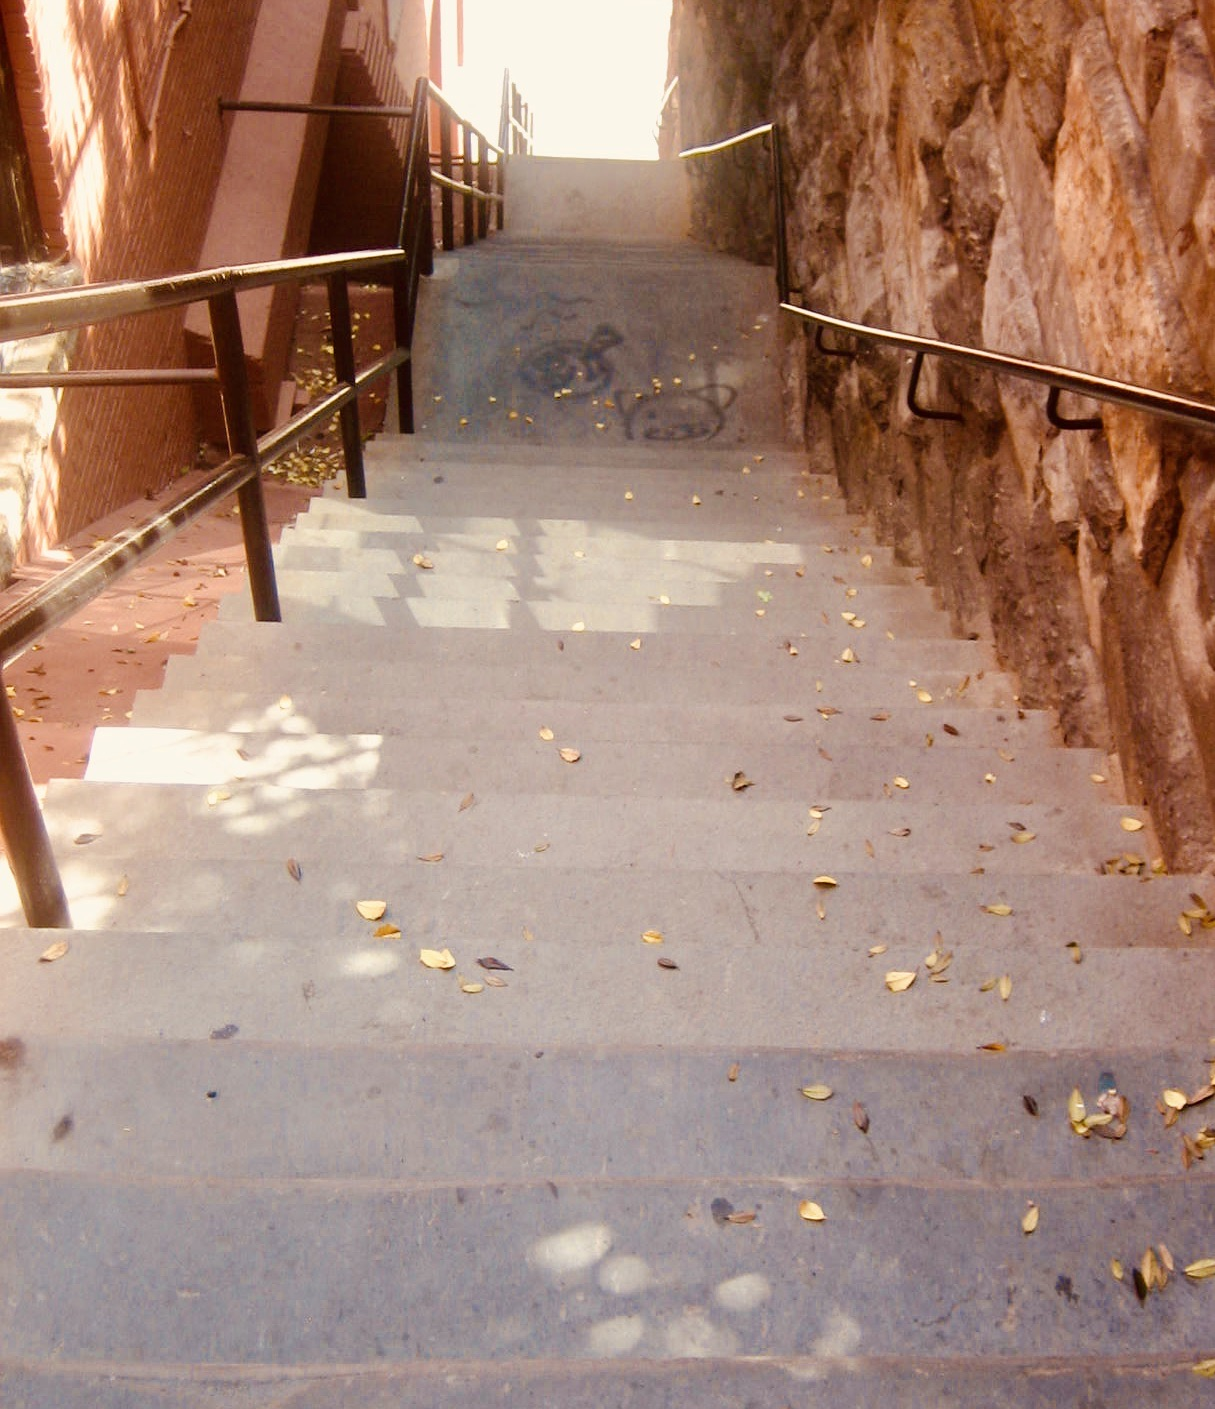 The Exorcist Steps Leading from Prospect Street to M Street